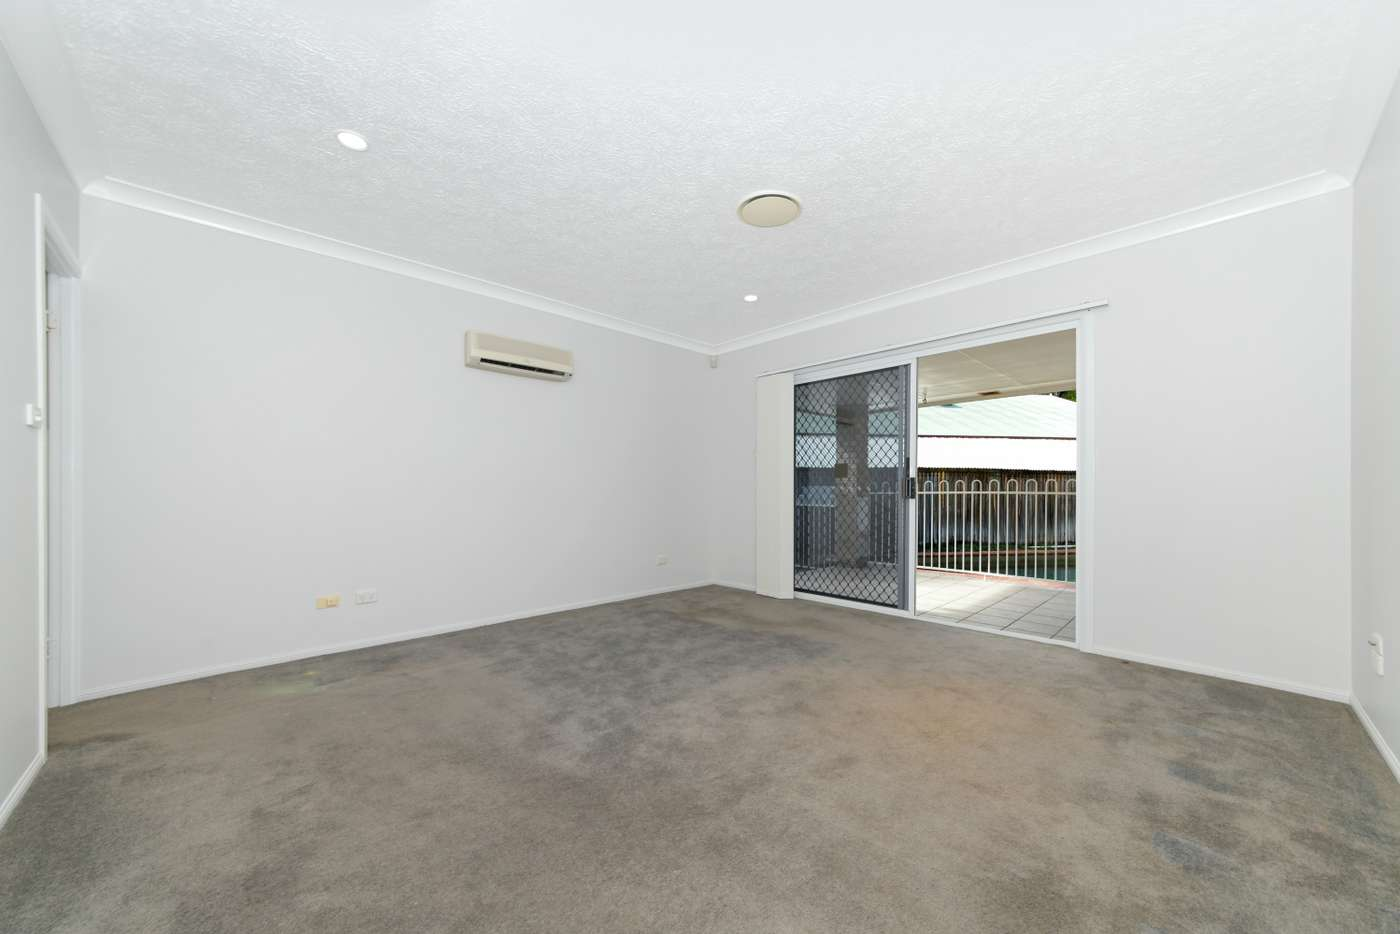 Sixth view of Homely house listing, 3 Nowranie Court, Annandale QLD 4814